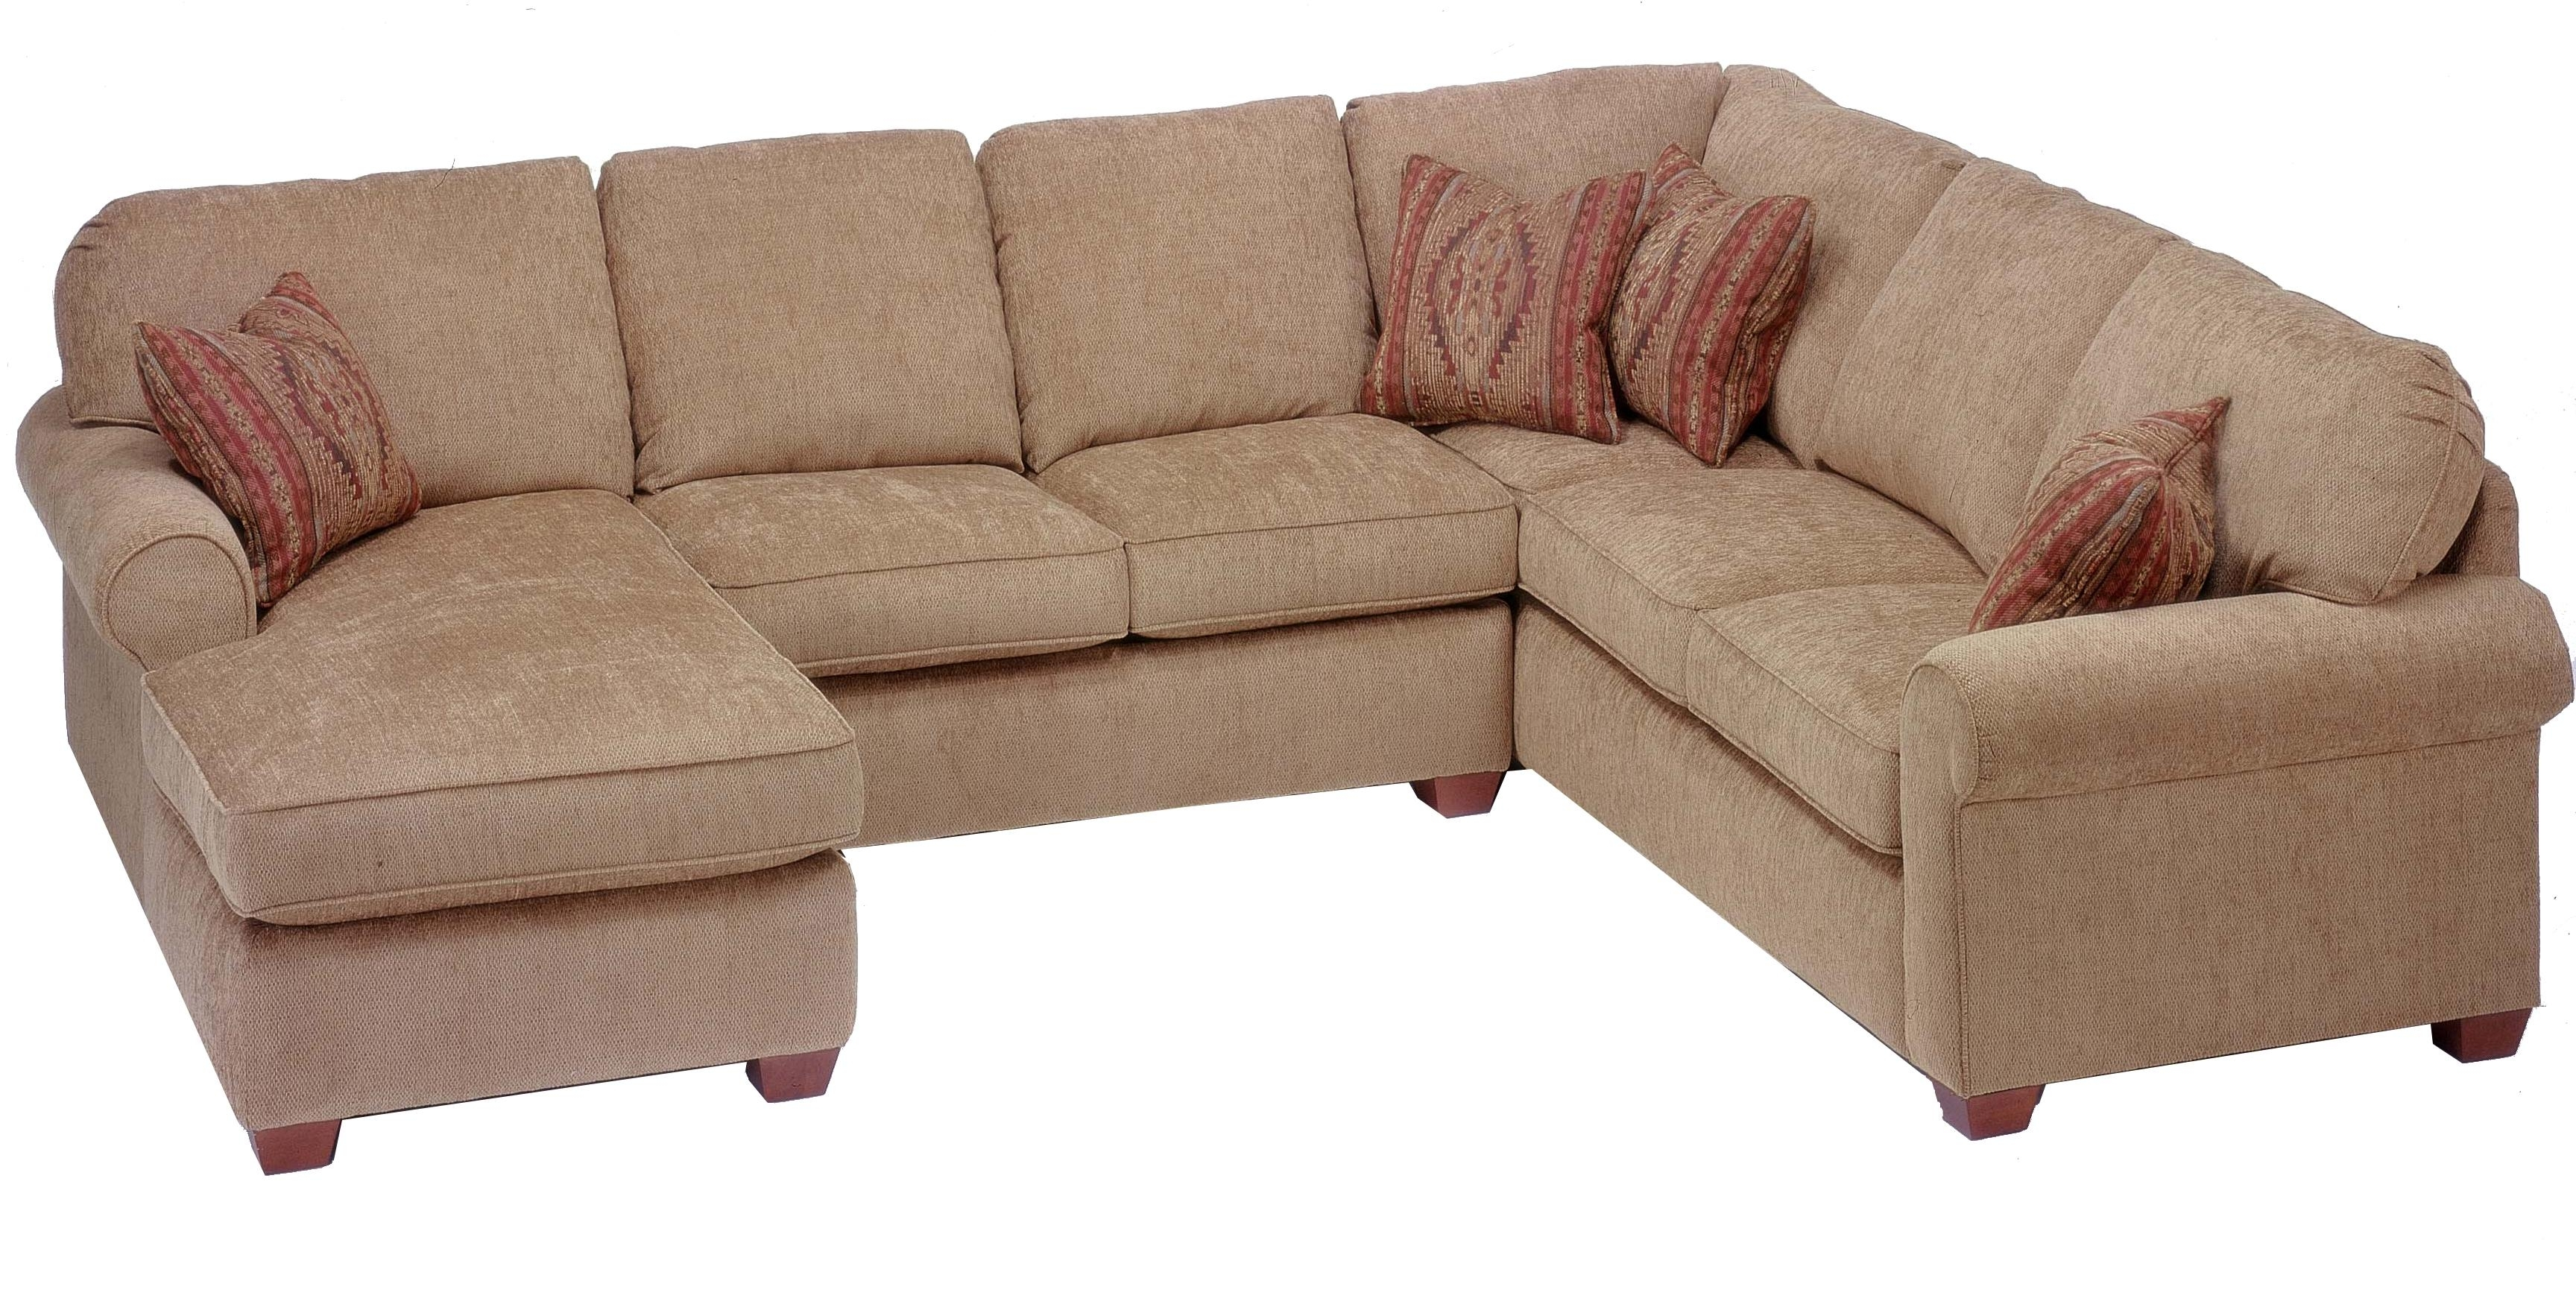 Flexsteel Thornton 3 Piece Sectional With Chaise – Ahfa – Sofa Inside Gordon 3 Piece Sectionals With Raf Chaise (Image 6 of 25)